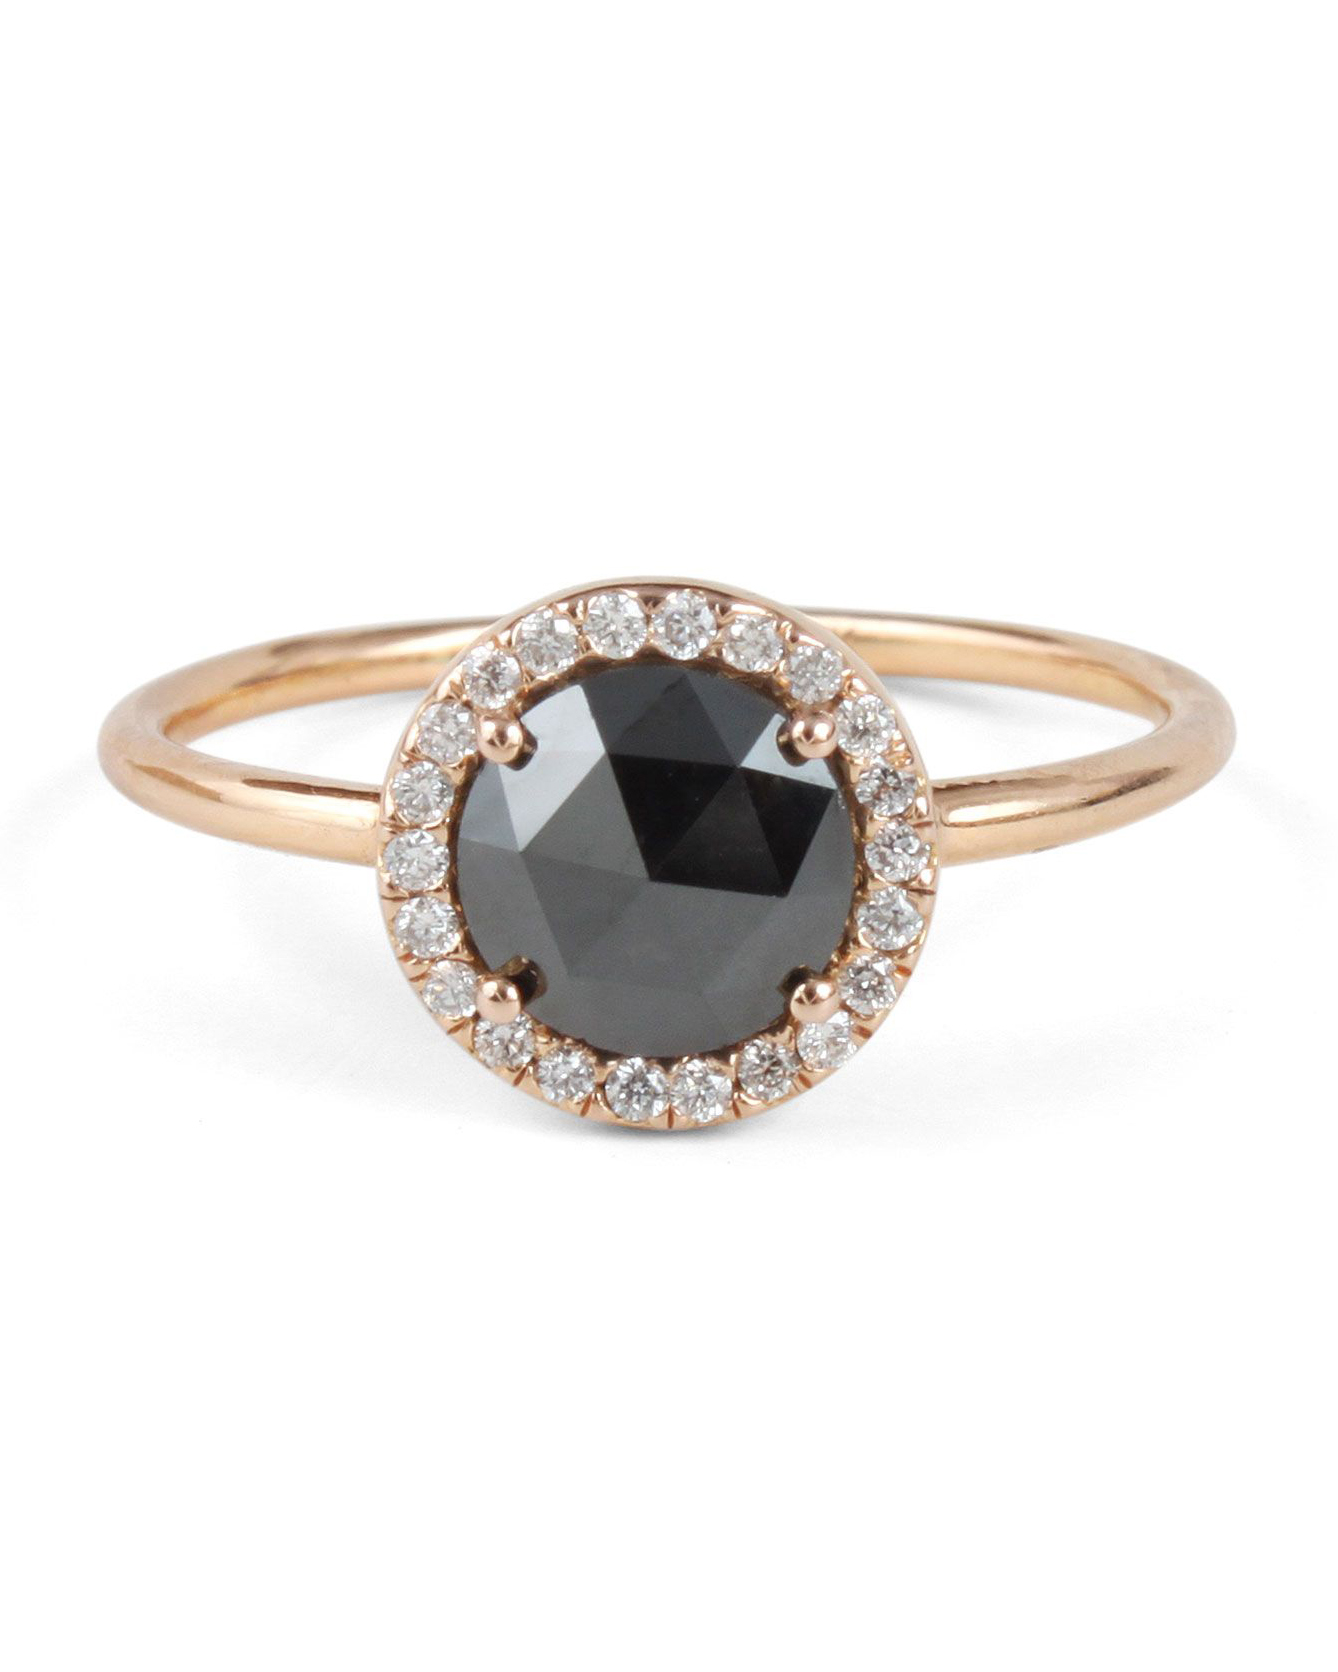 Blanca Monrós Gómez Black Diamond Aura Ring